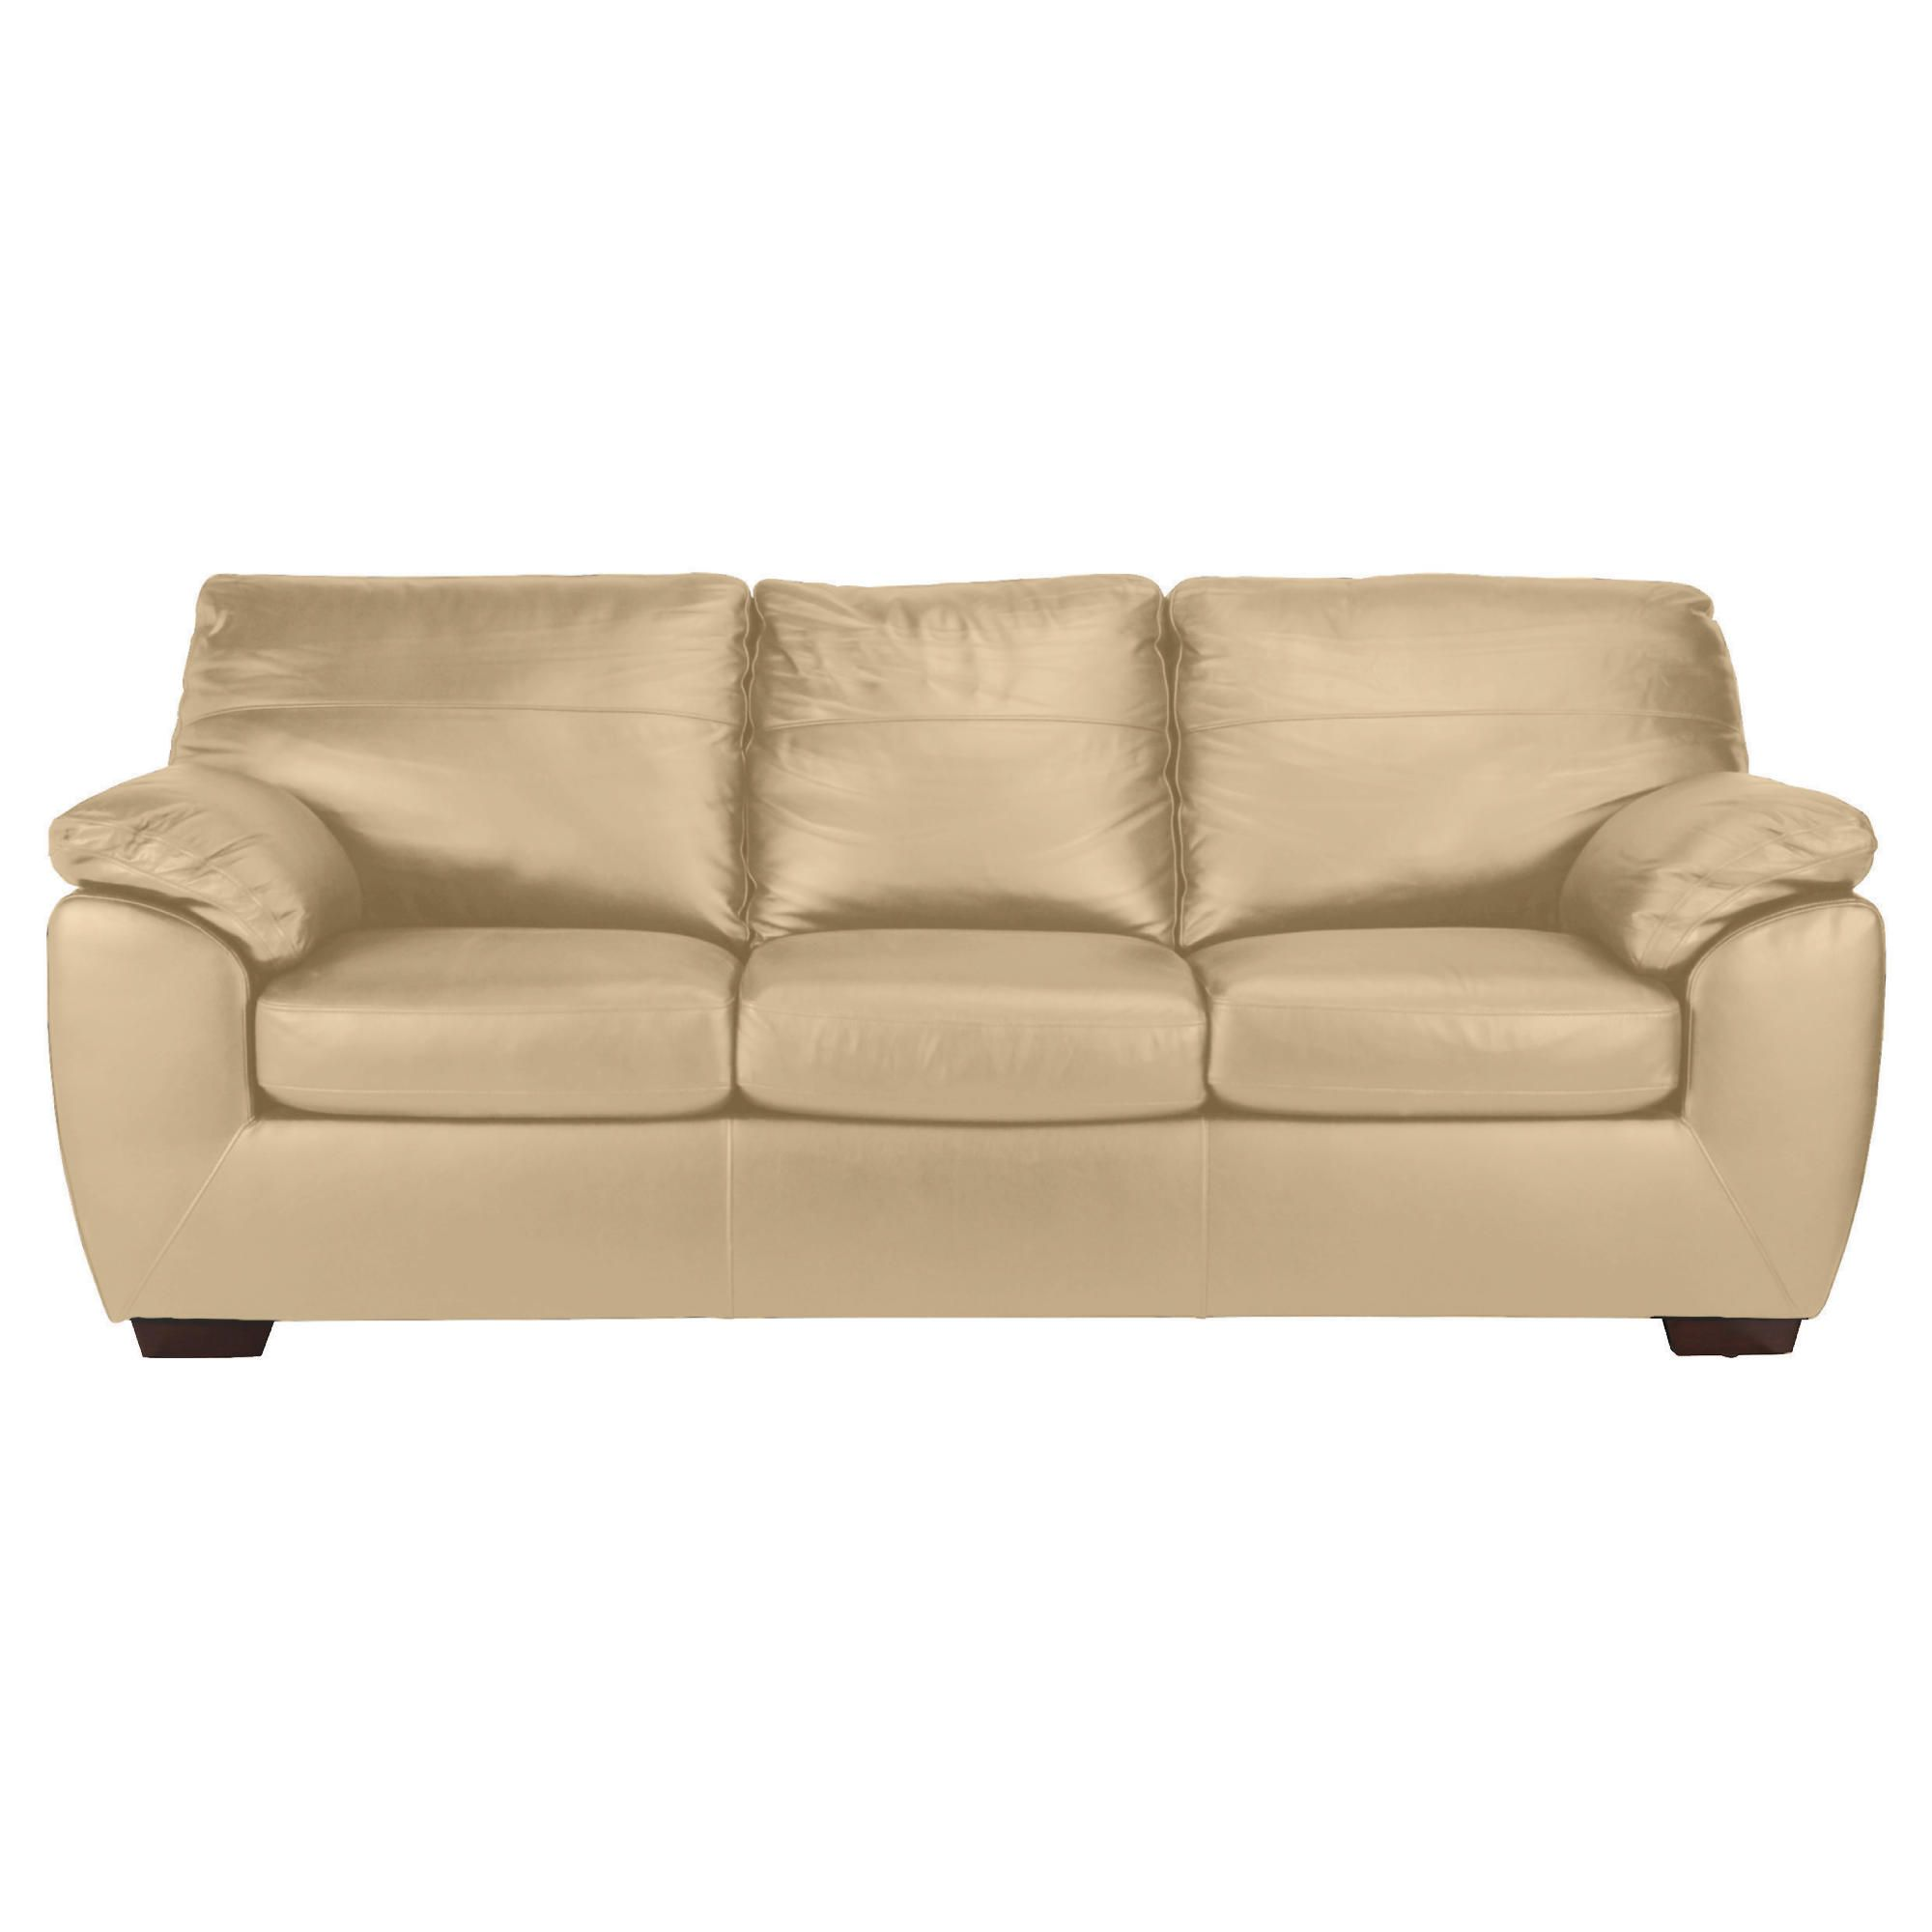 Alberta Sofabed, Ivory at Tesco Direct